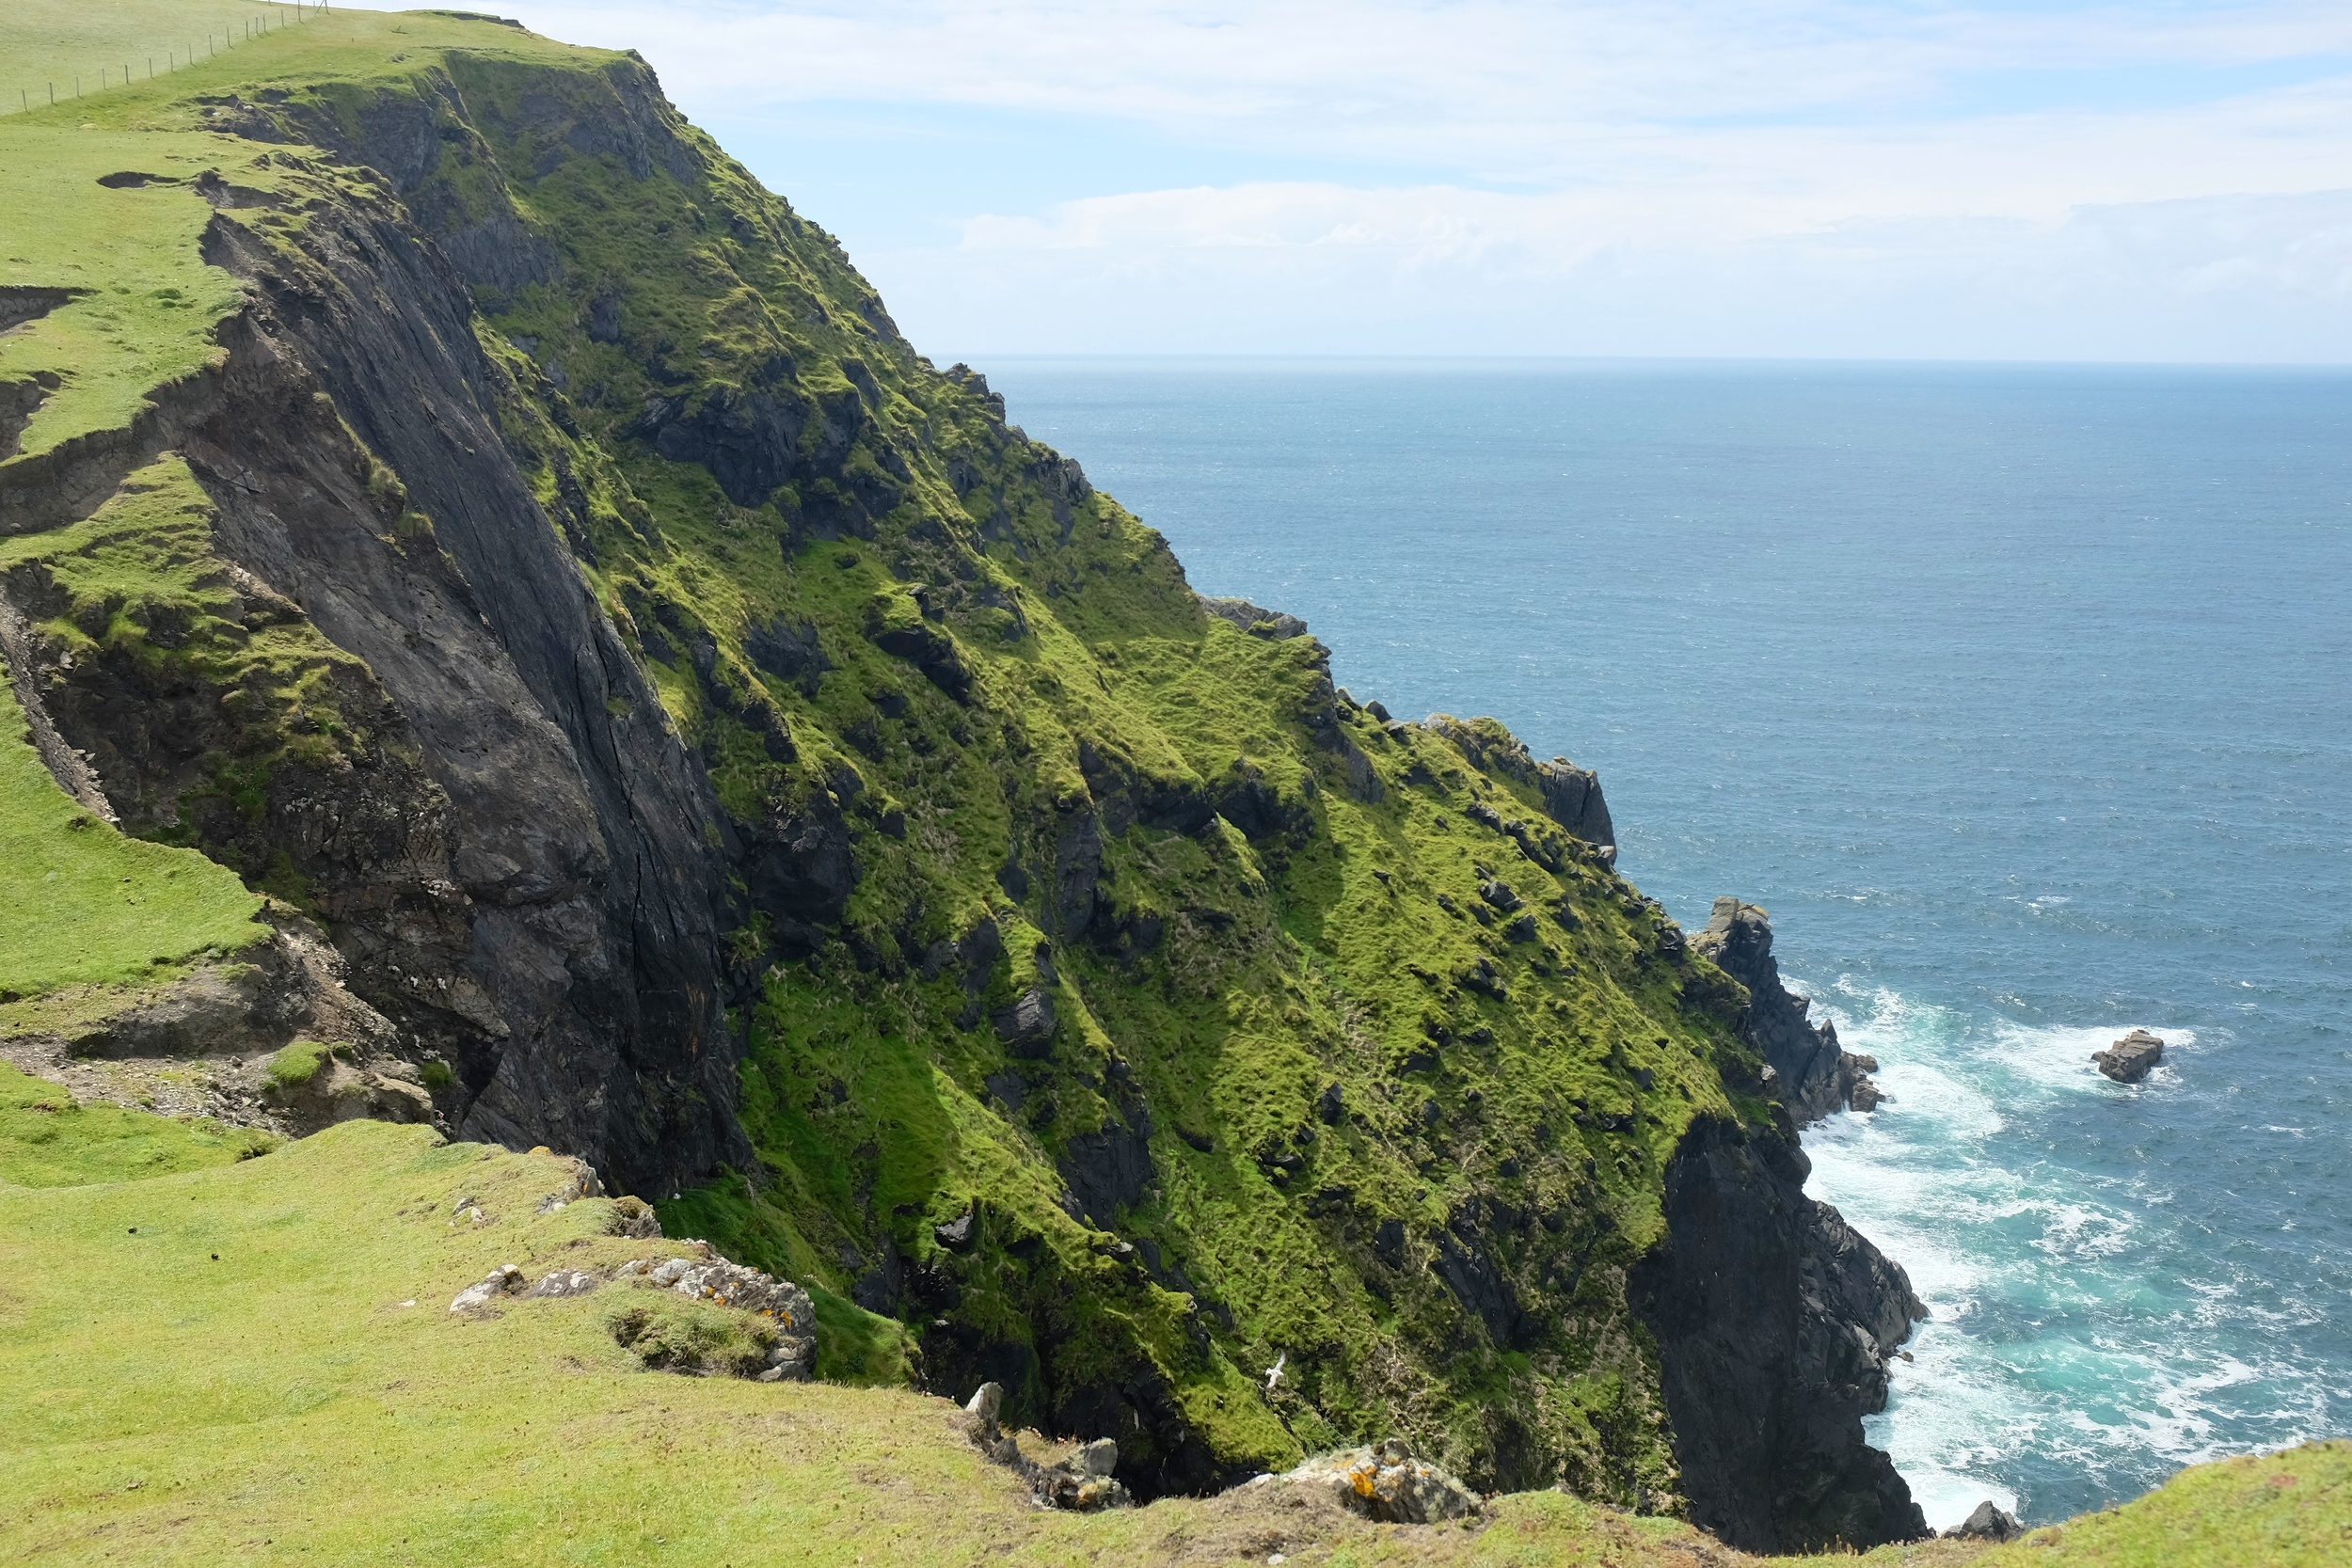 View of the cliffs and the Atlantic Ocean